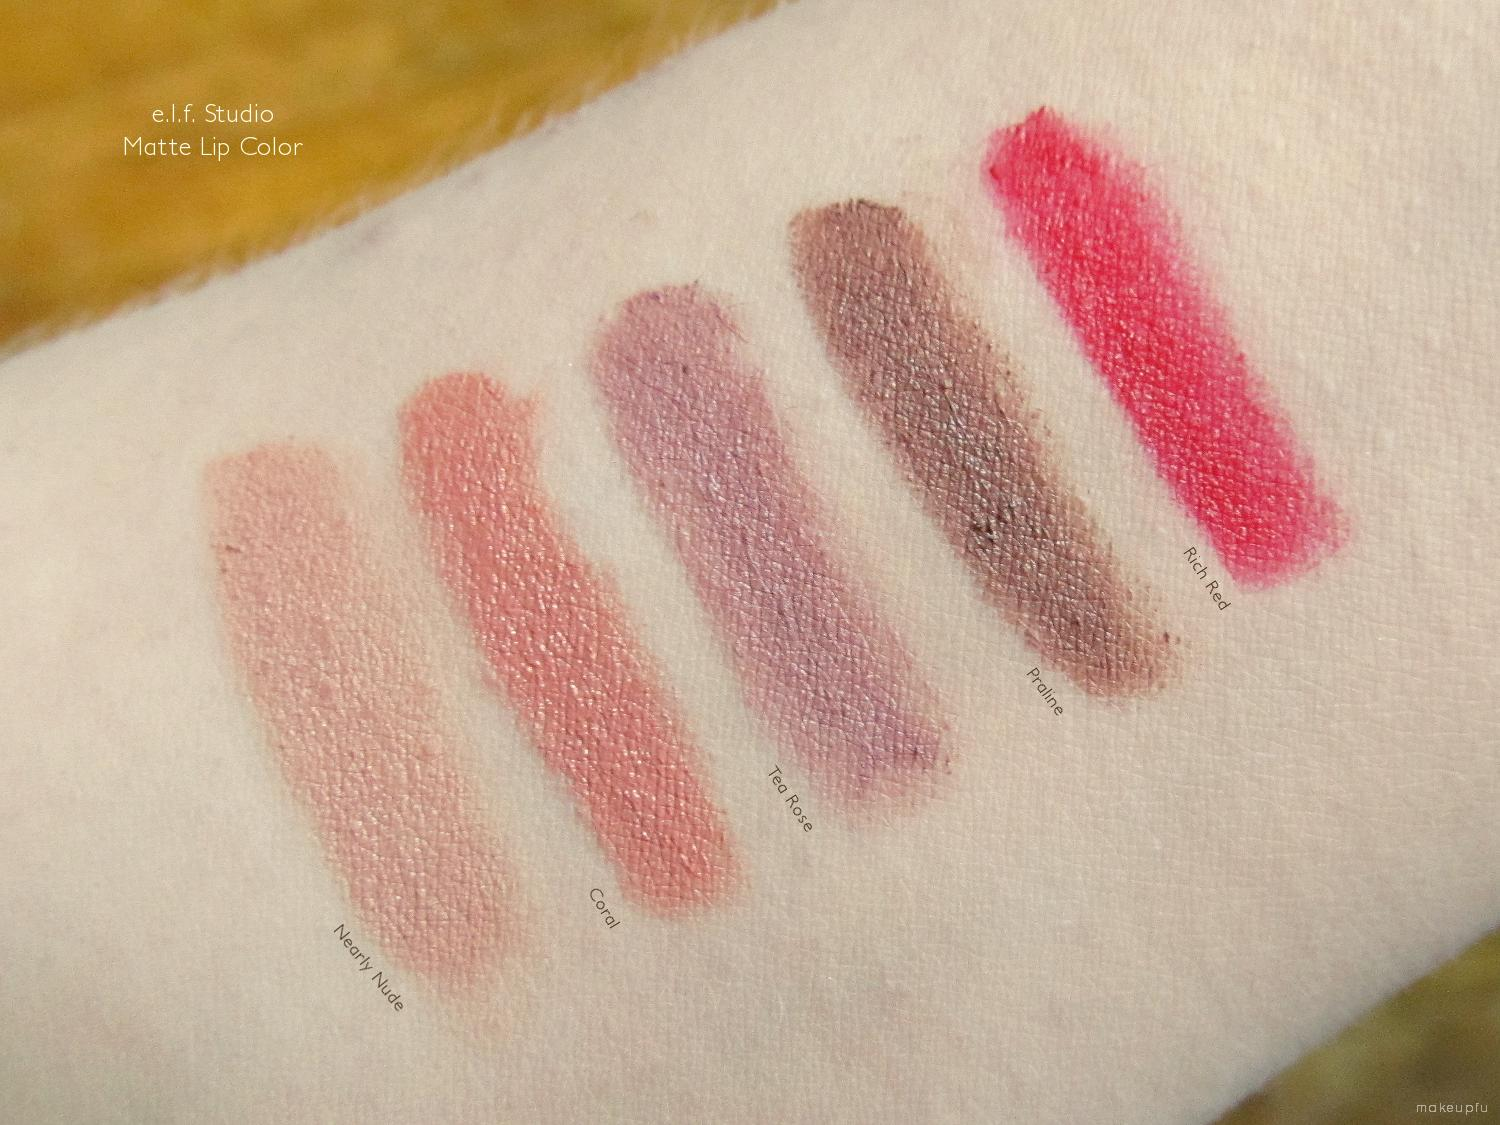 Swatches of e.l.f. Studio Matte Lip Color in Nearly Nude, Coral, Tea Rose,